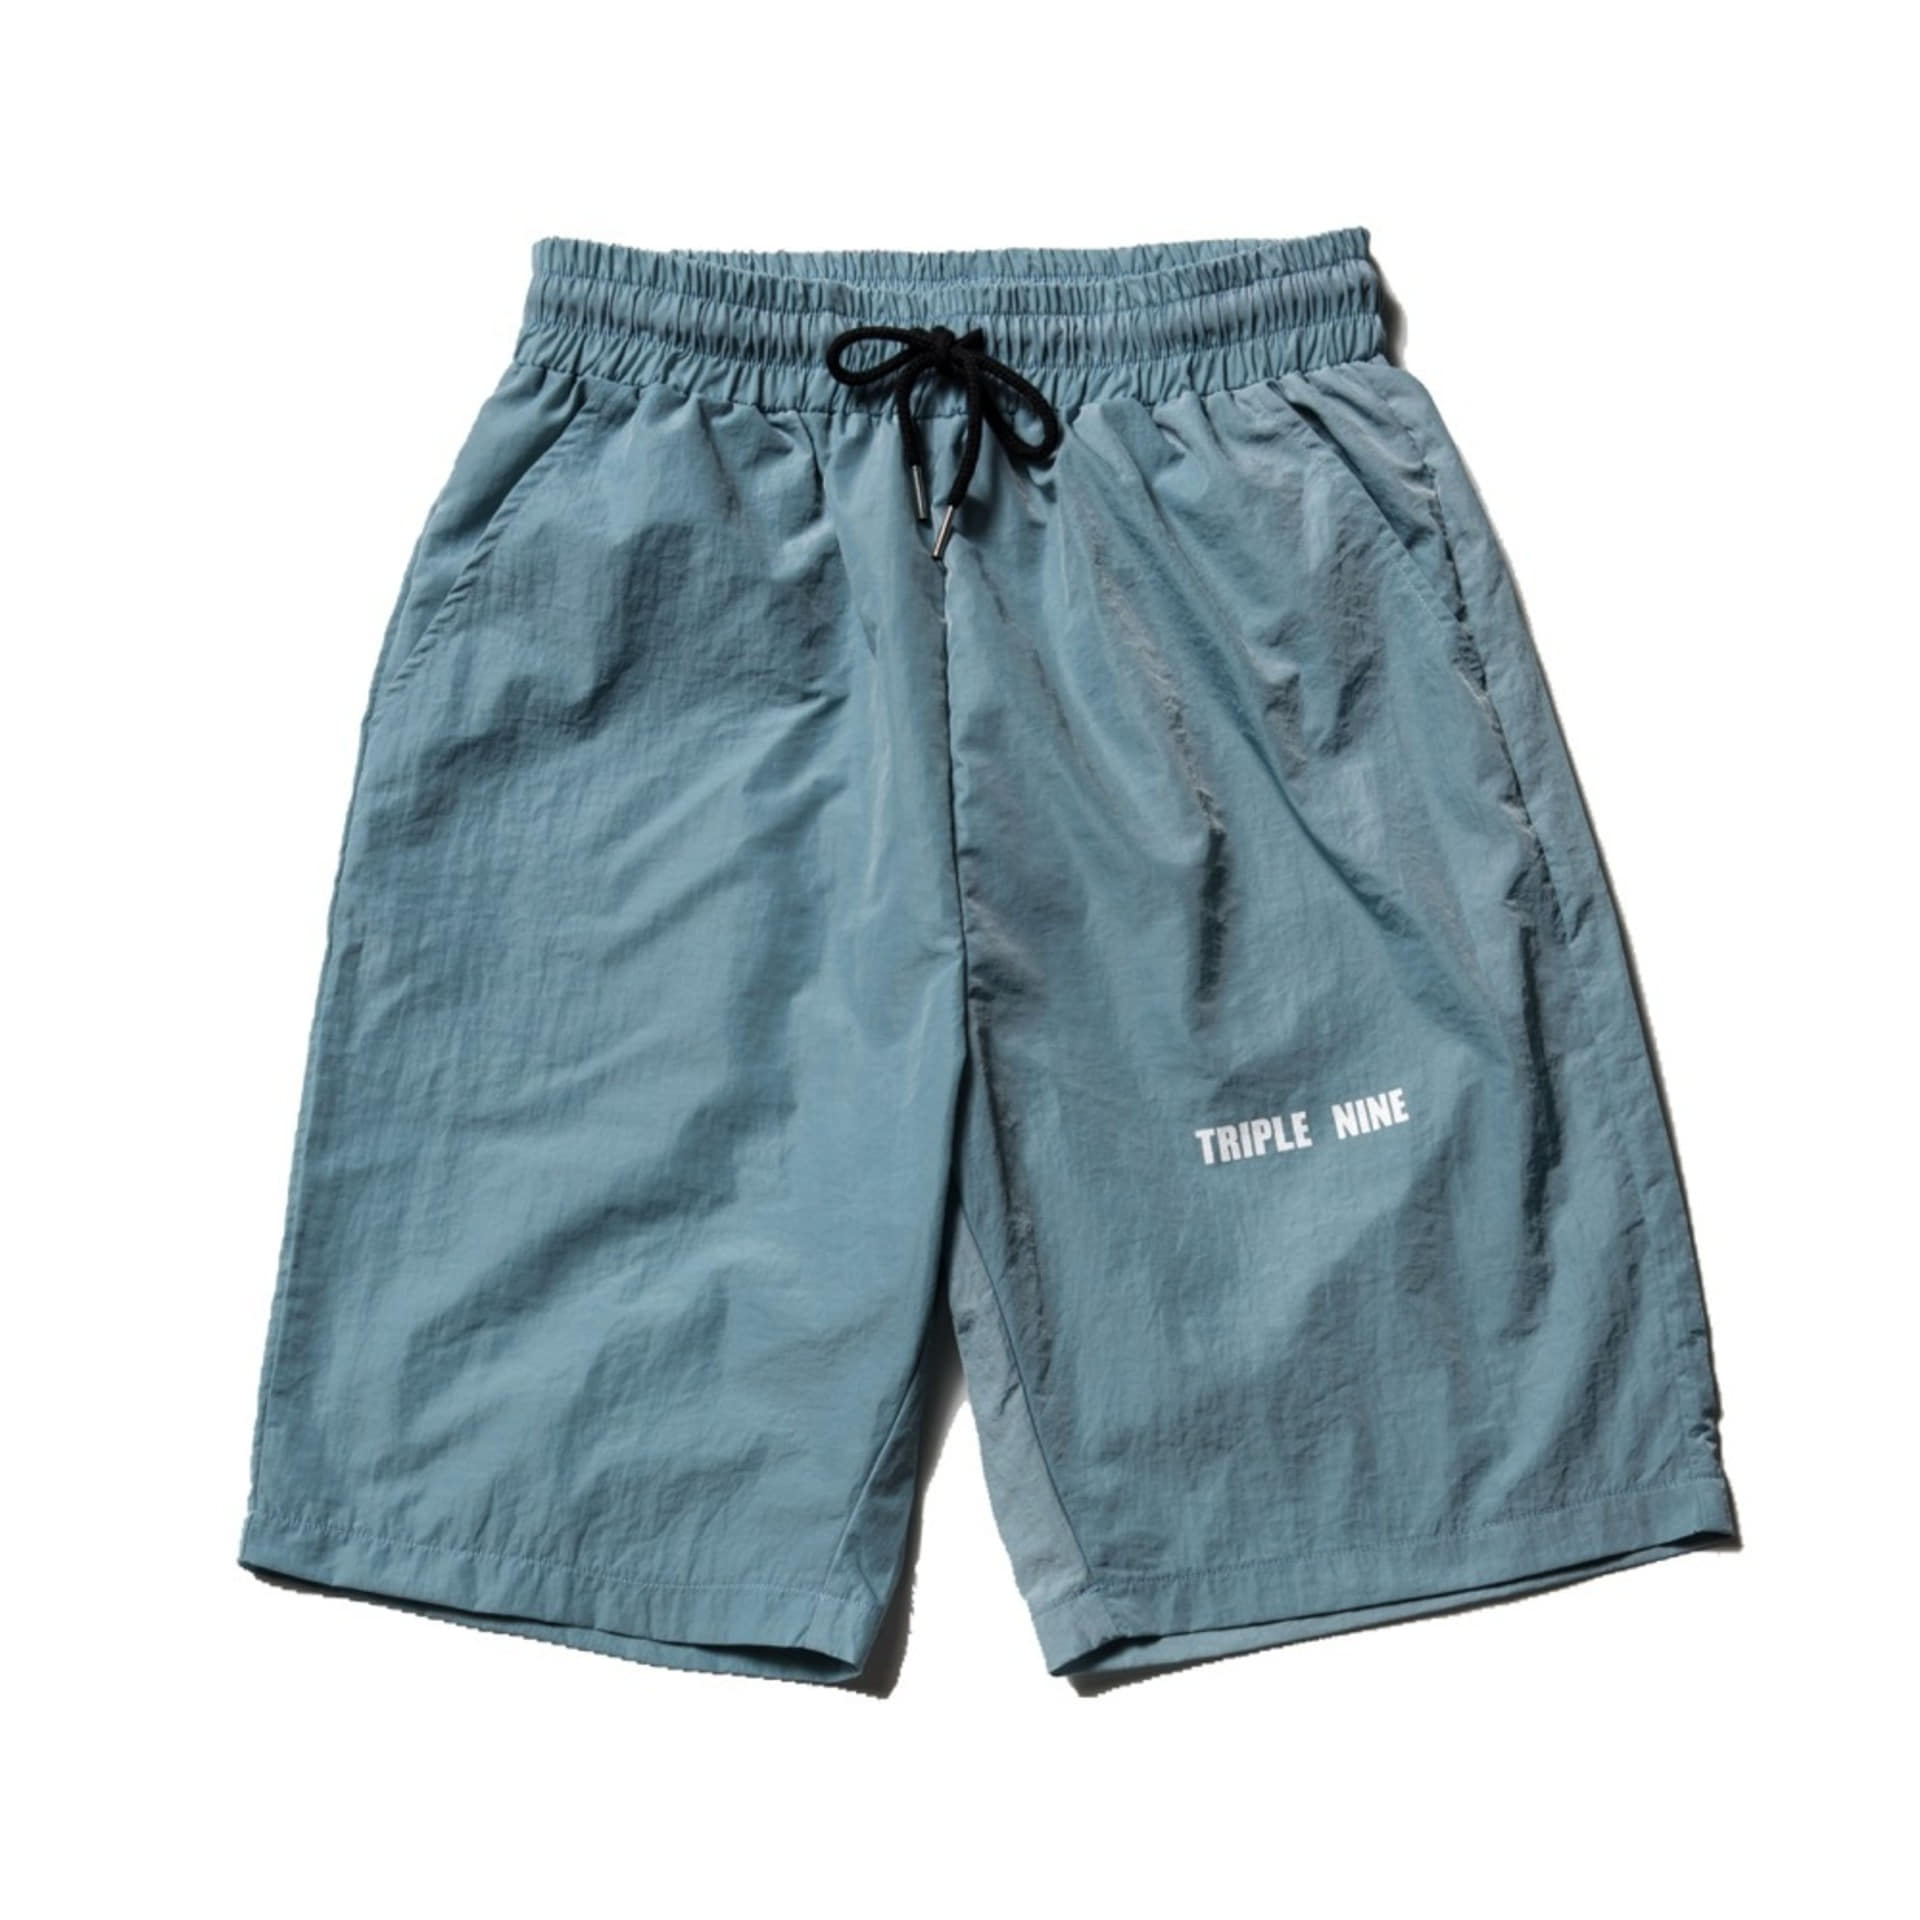 TRIPLE NINE GRAY SHORTS#1